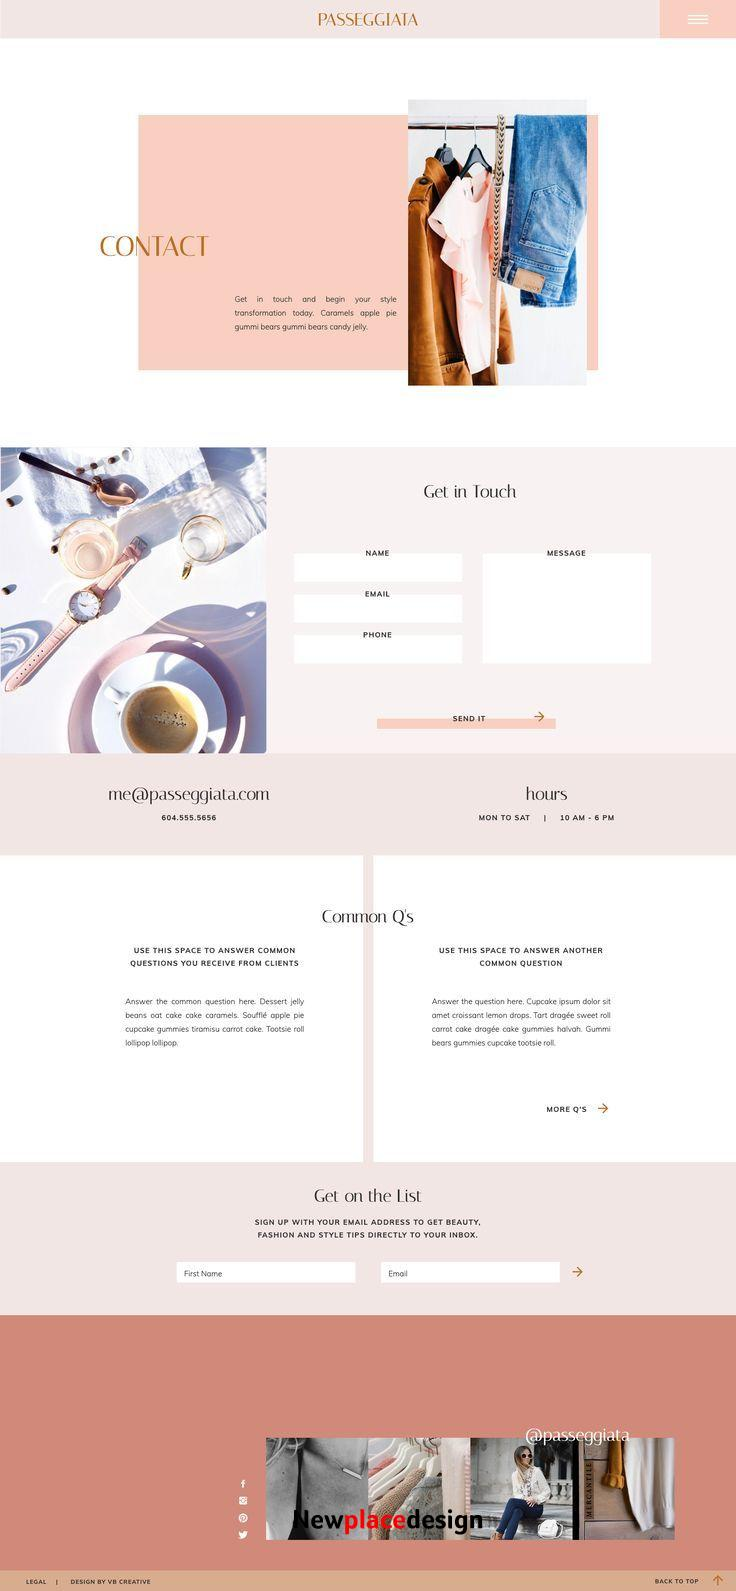 Showit Website Template for Feminine Personal Brands Passeggiata by VB Creative